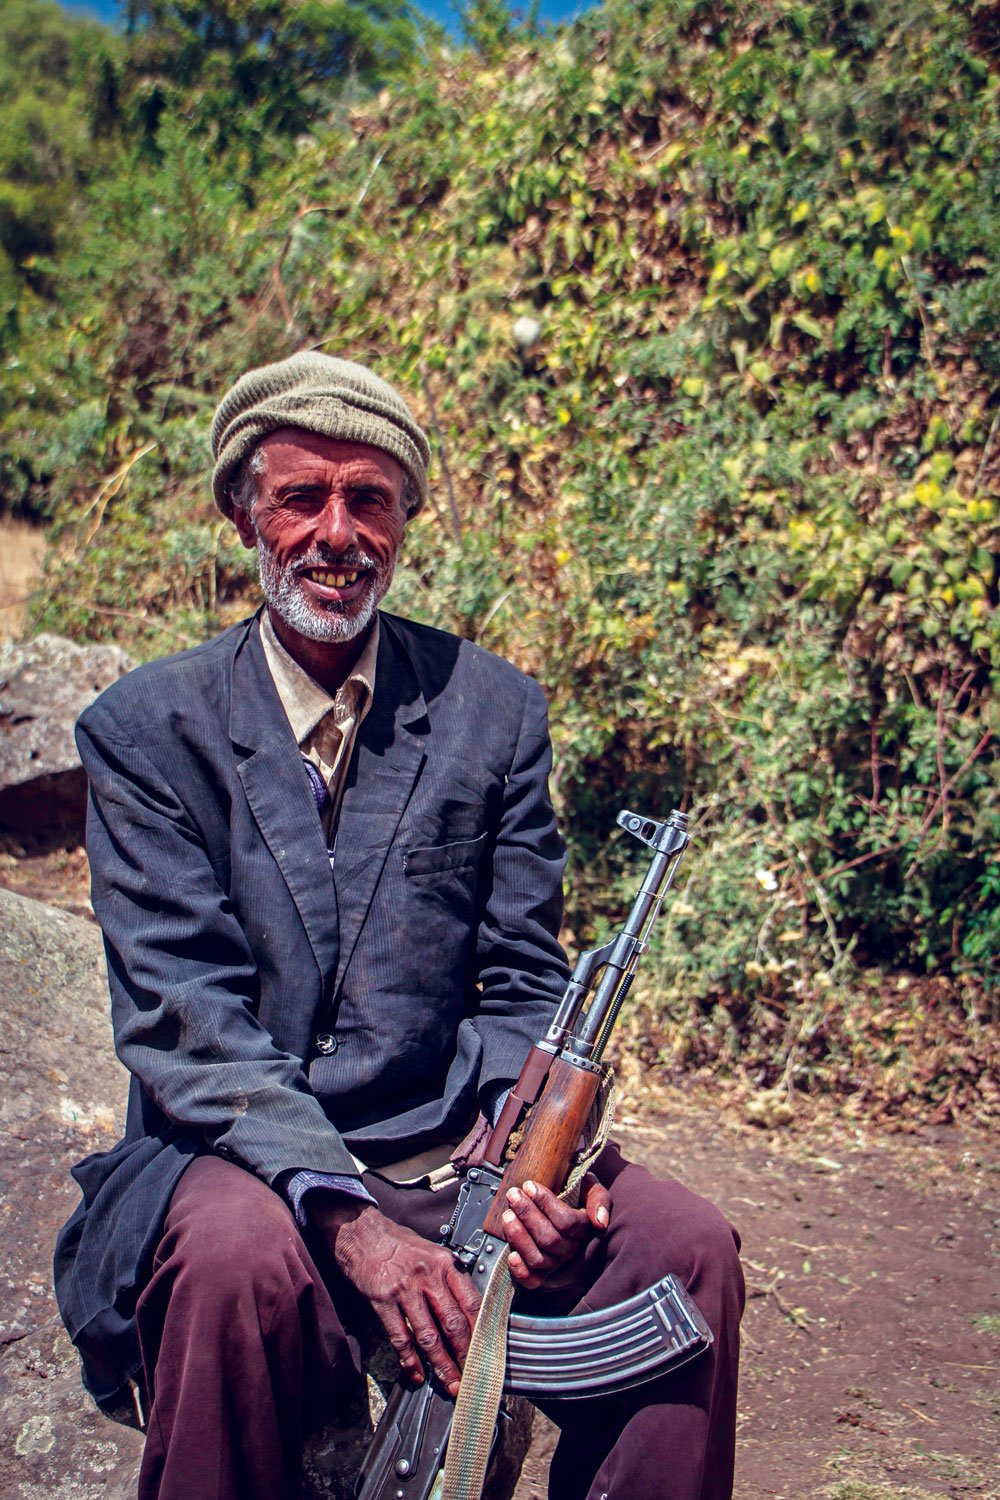 The Simien scout with his AK-47 bearing a smile